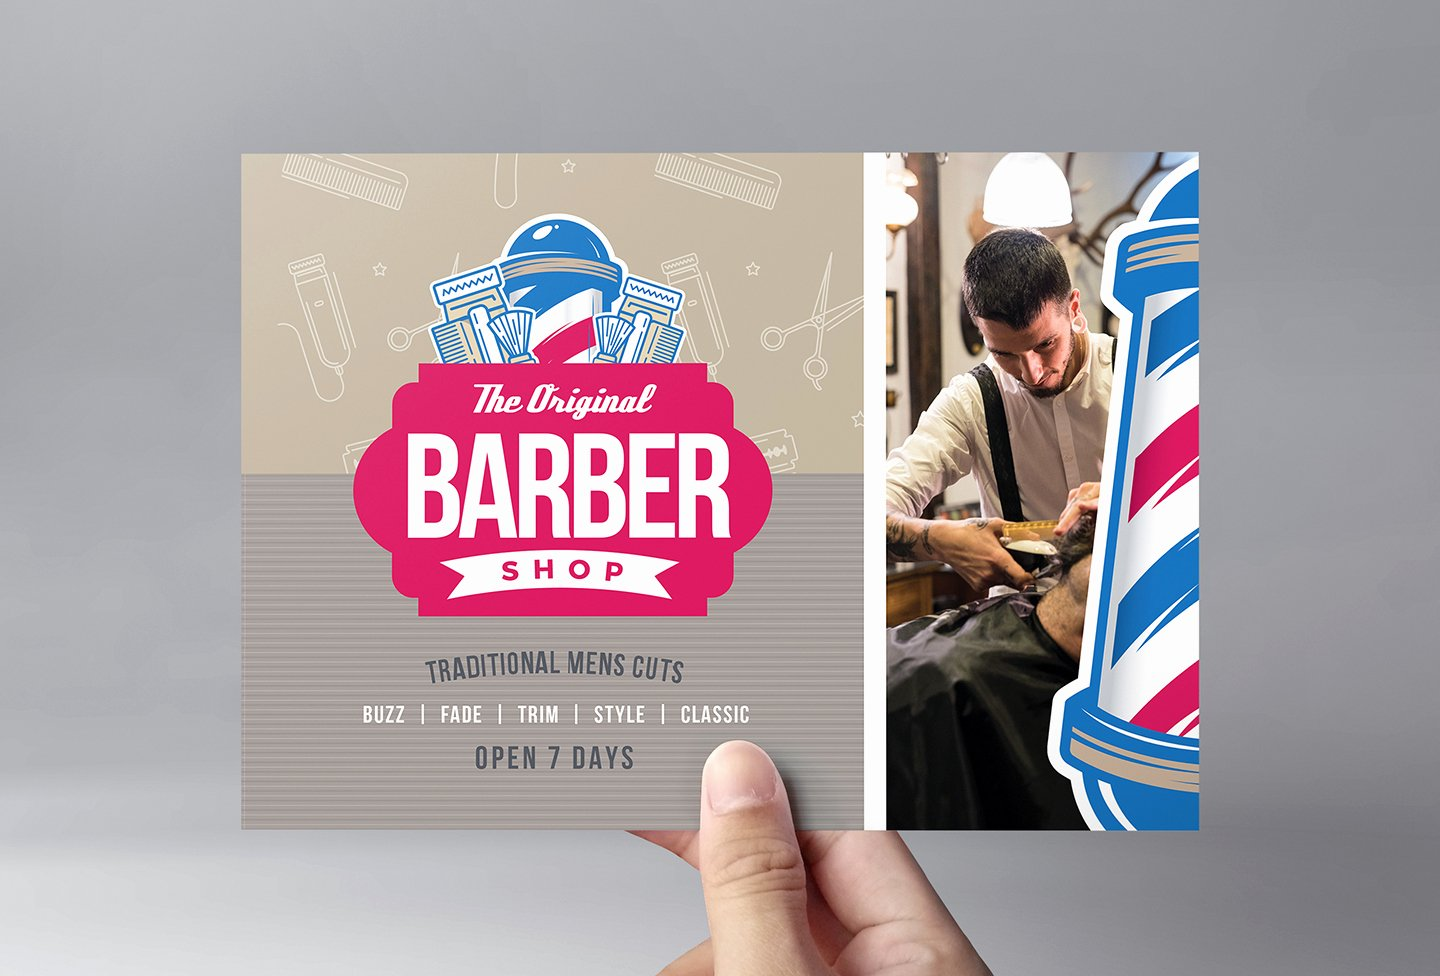 Barber S Shop Flyer Template In Psd Ai & Vector Brandpacks